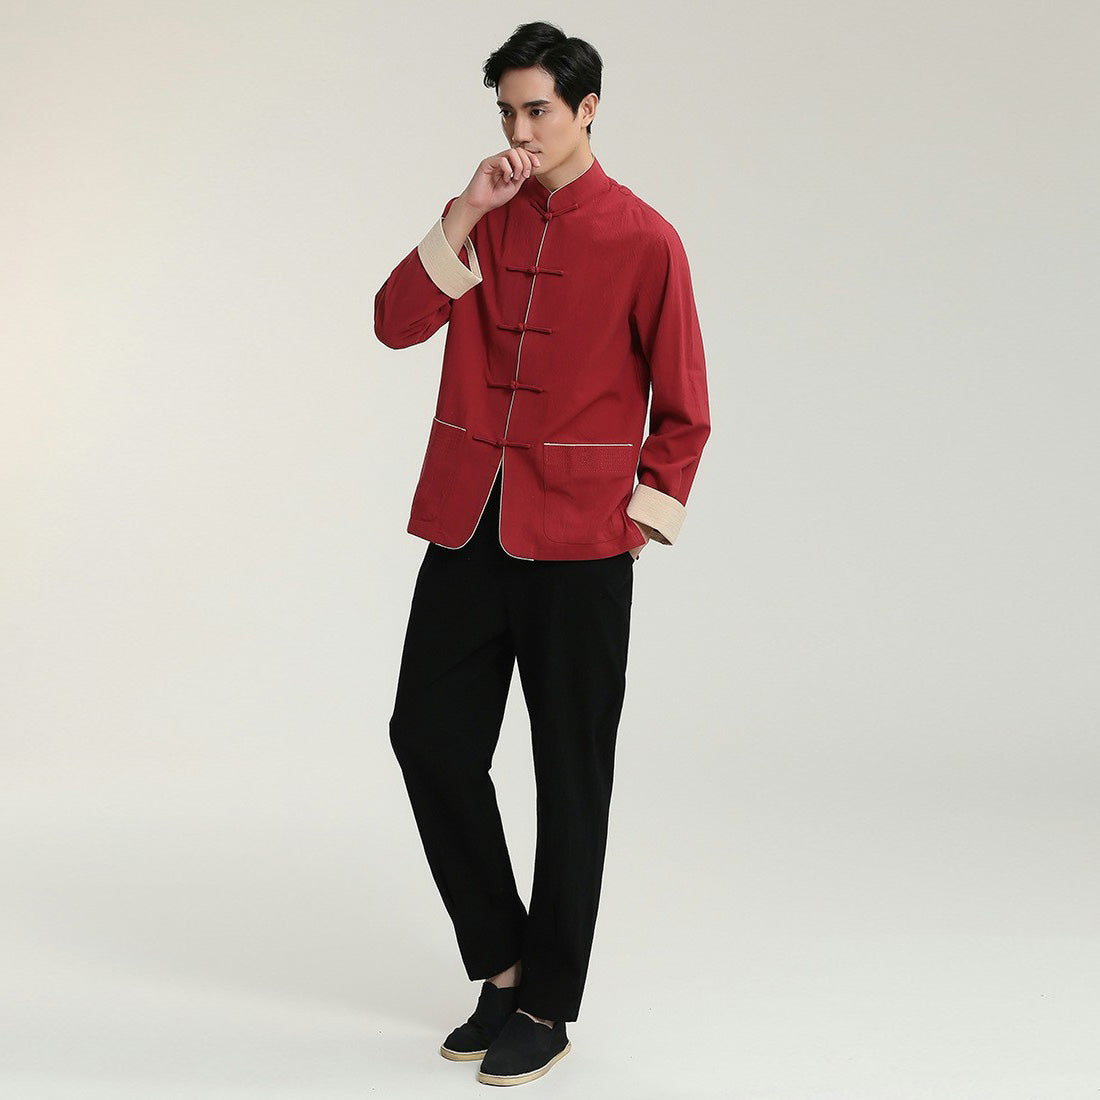 Linen Traditional Chinese Kung Fu Suit – IDREAMMART